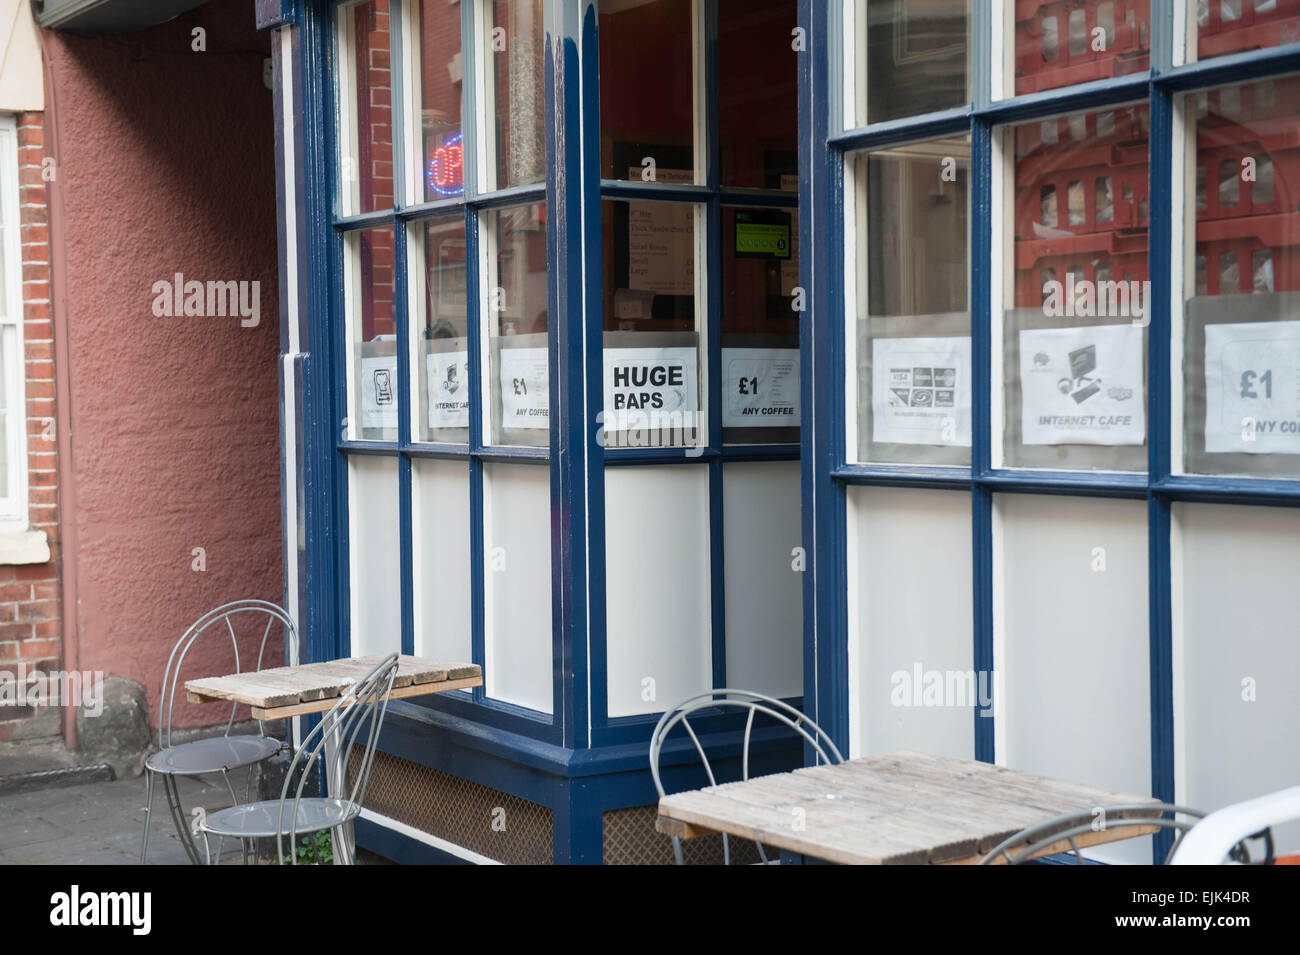 Cafe in Bristol city centre with a sign reading Huge Baps - Stock Image